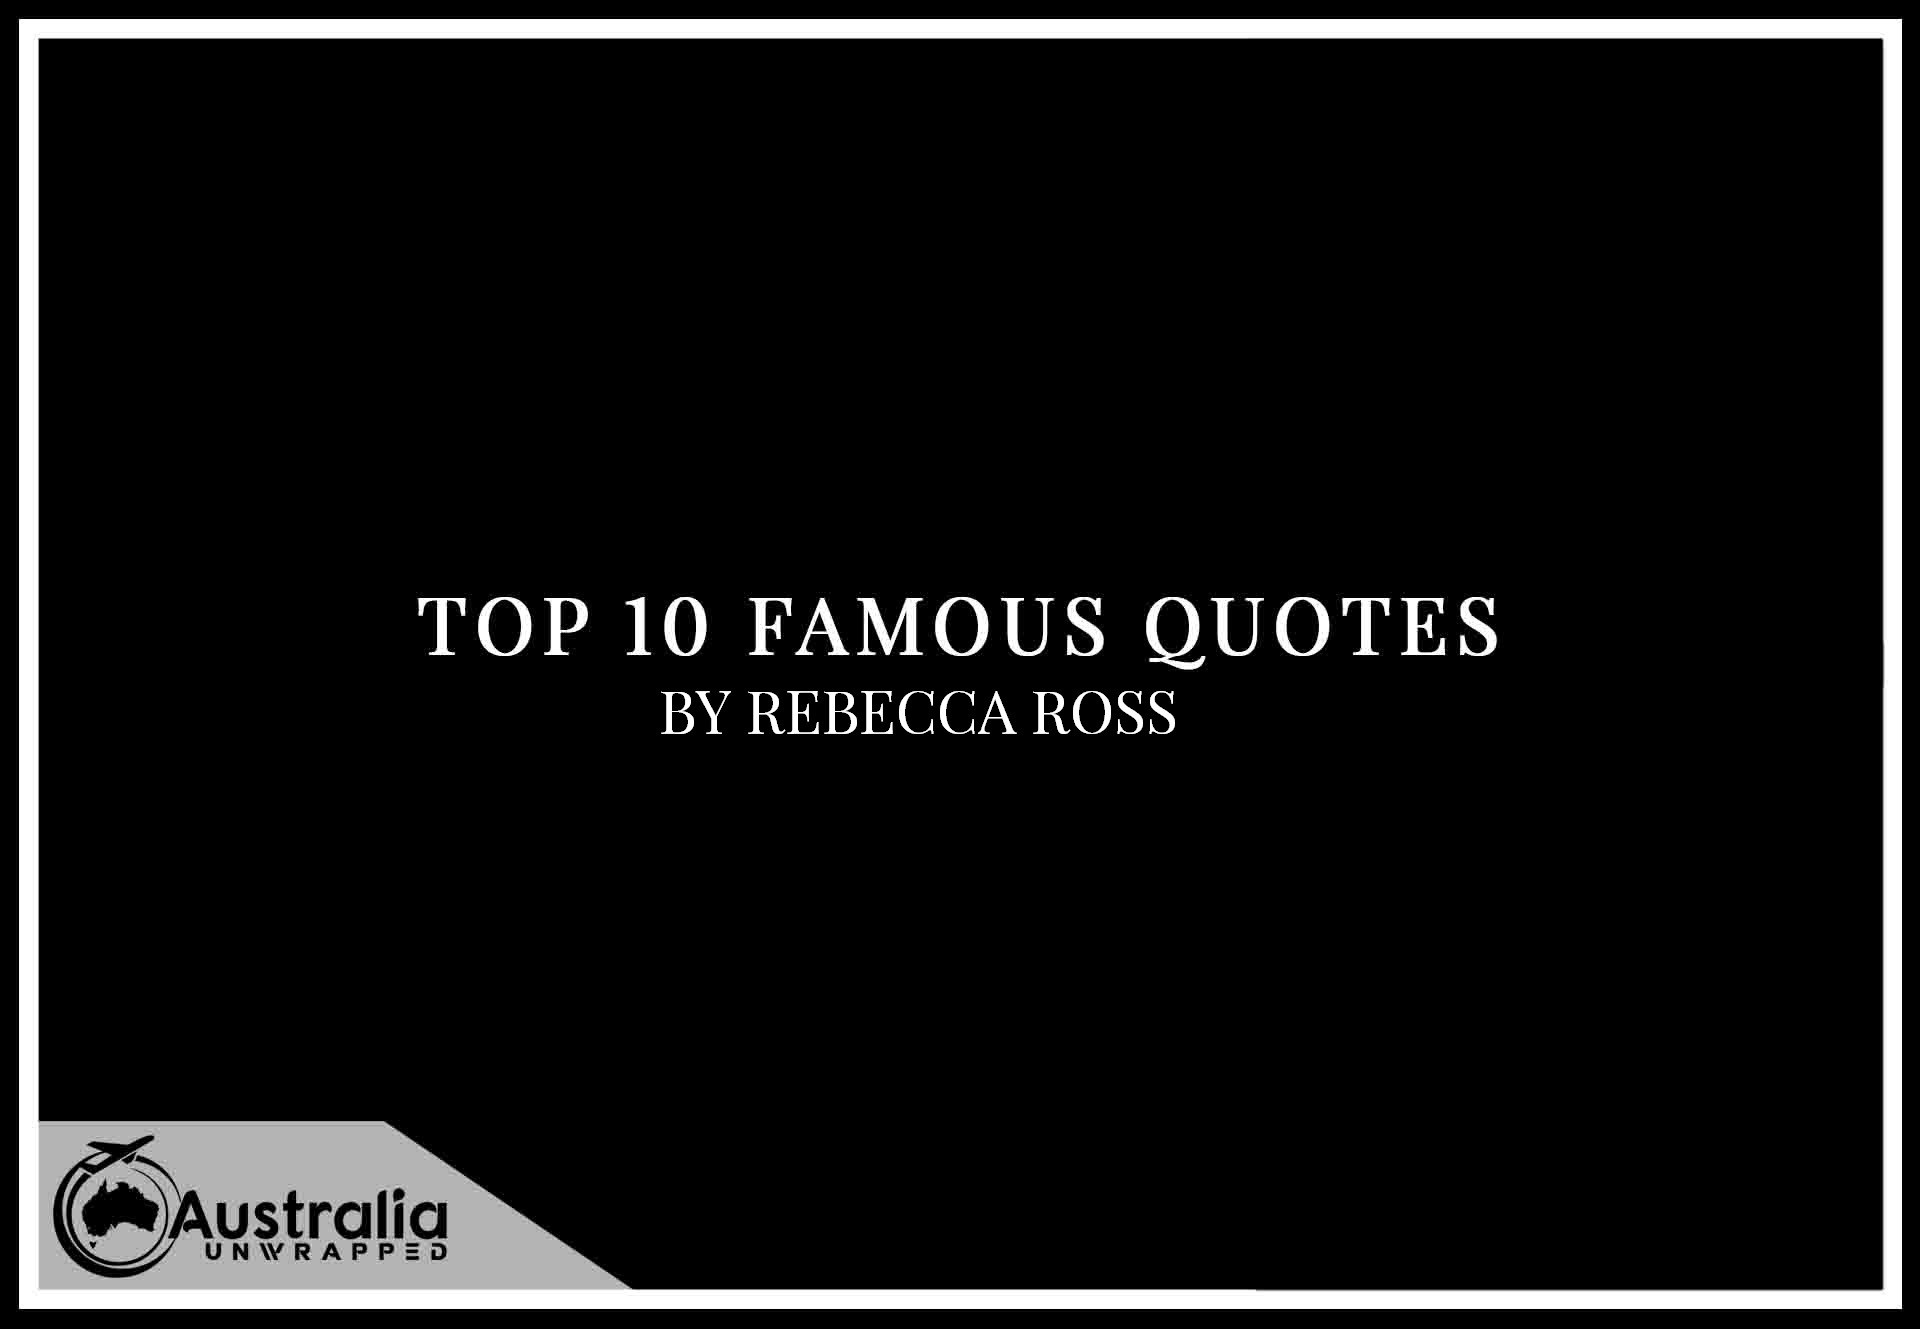 Top 10 Famous Quotes by Author Rebecca Ross